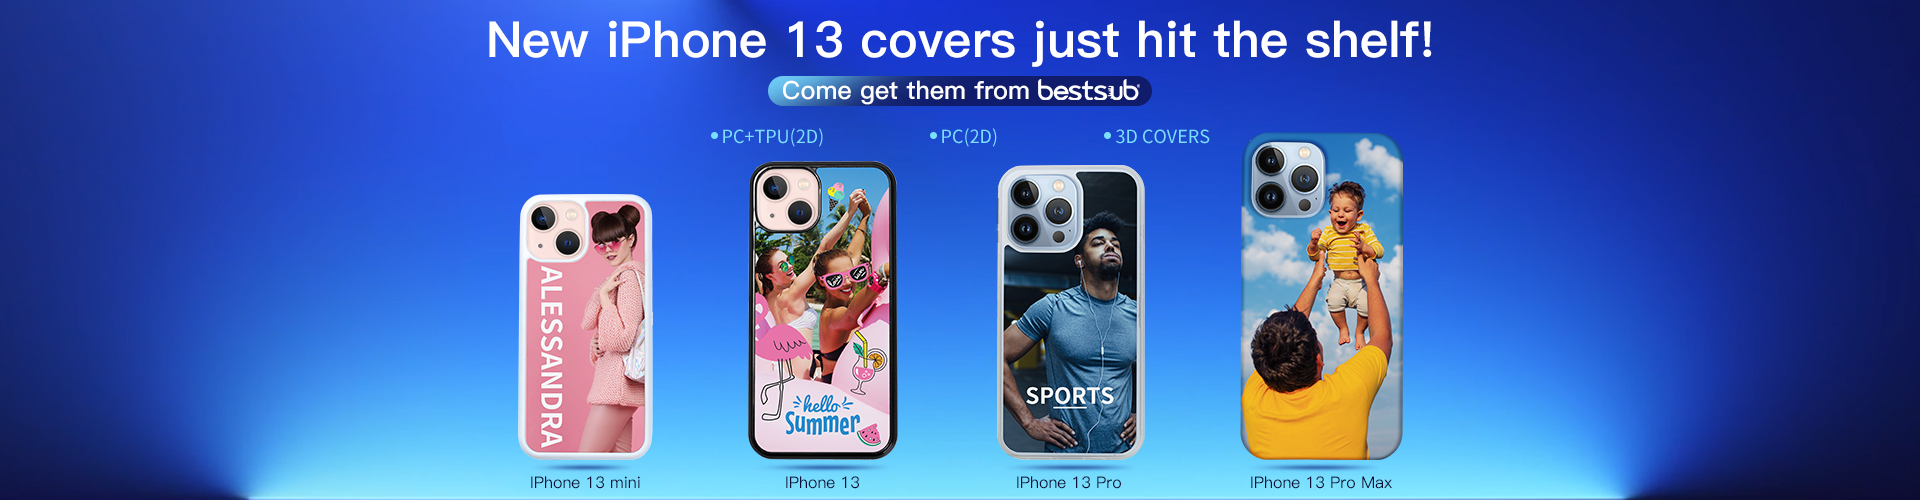 2021-09-24_New_iPhone_13_covers_just_hit_the_shelf_new_web